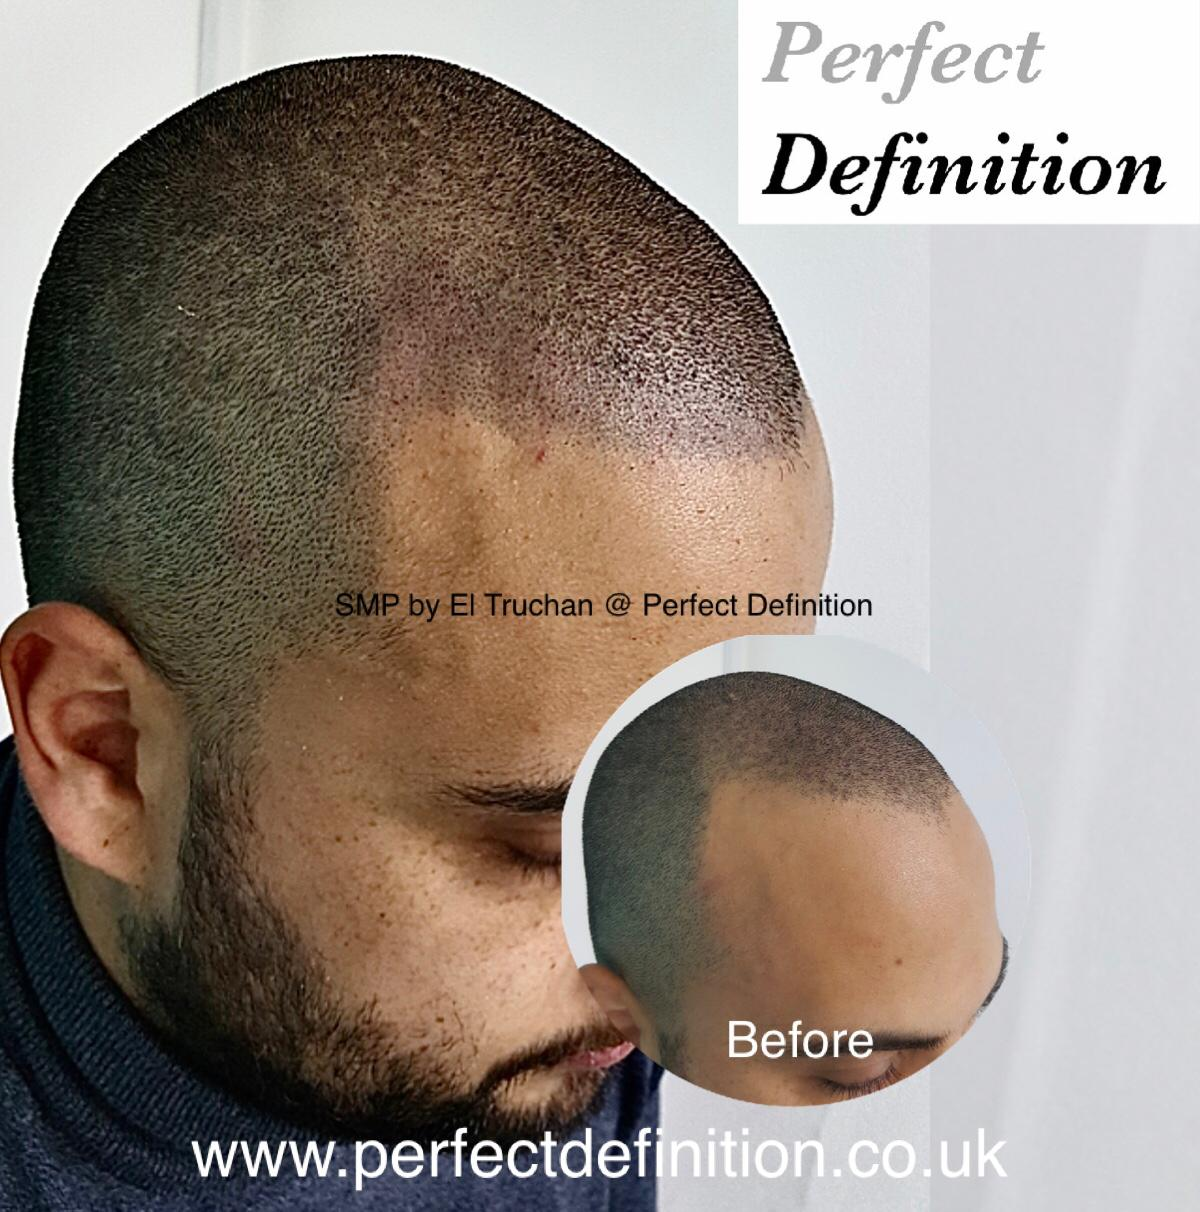 SMP by El Truchan at Perfect Definition.